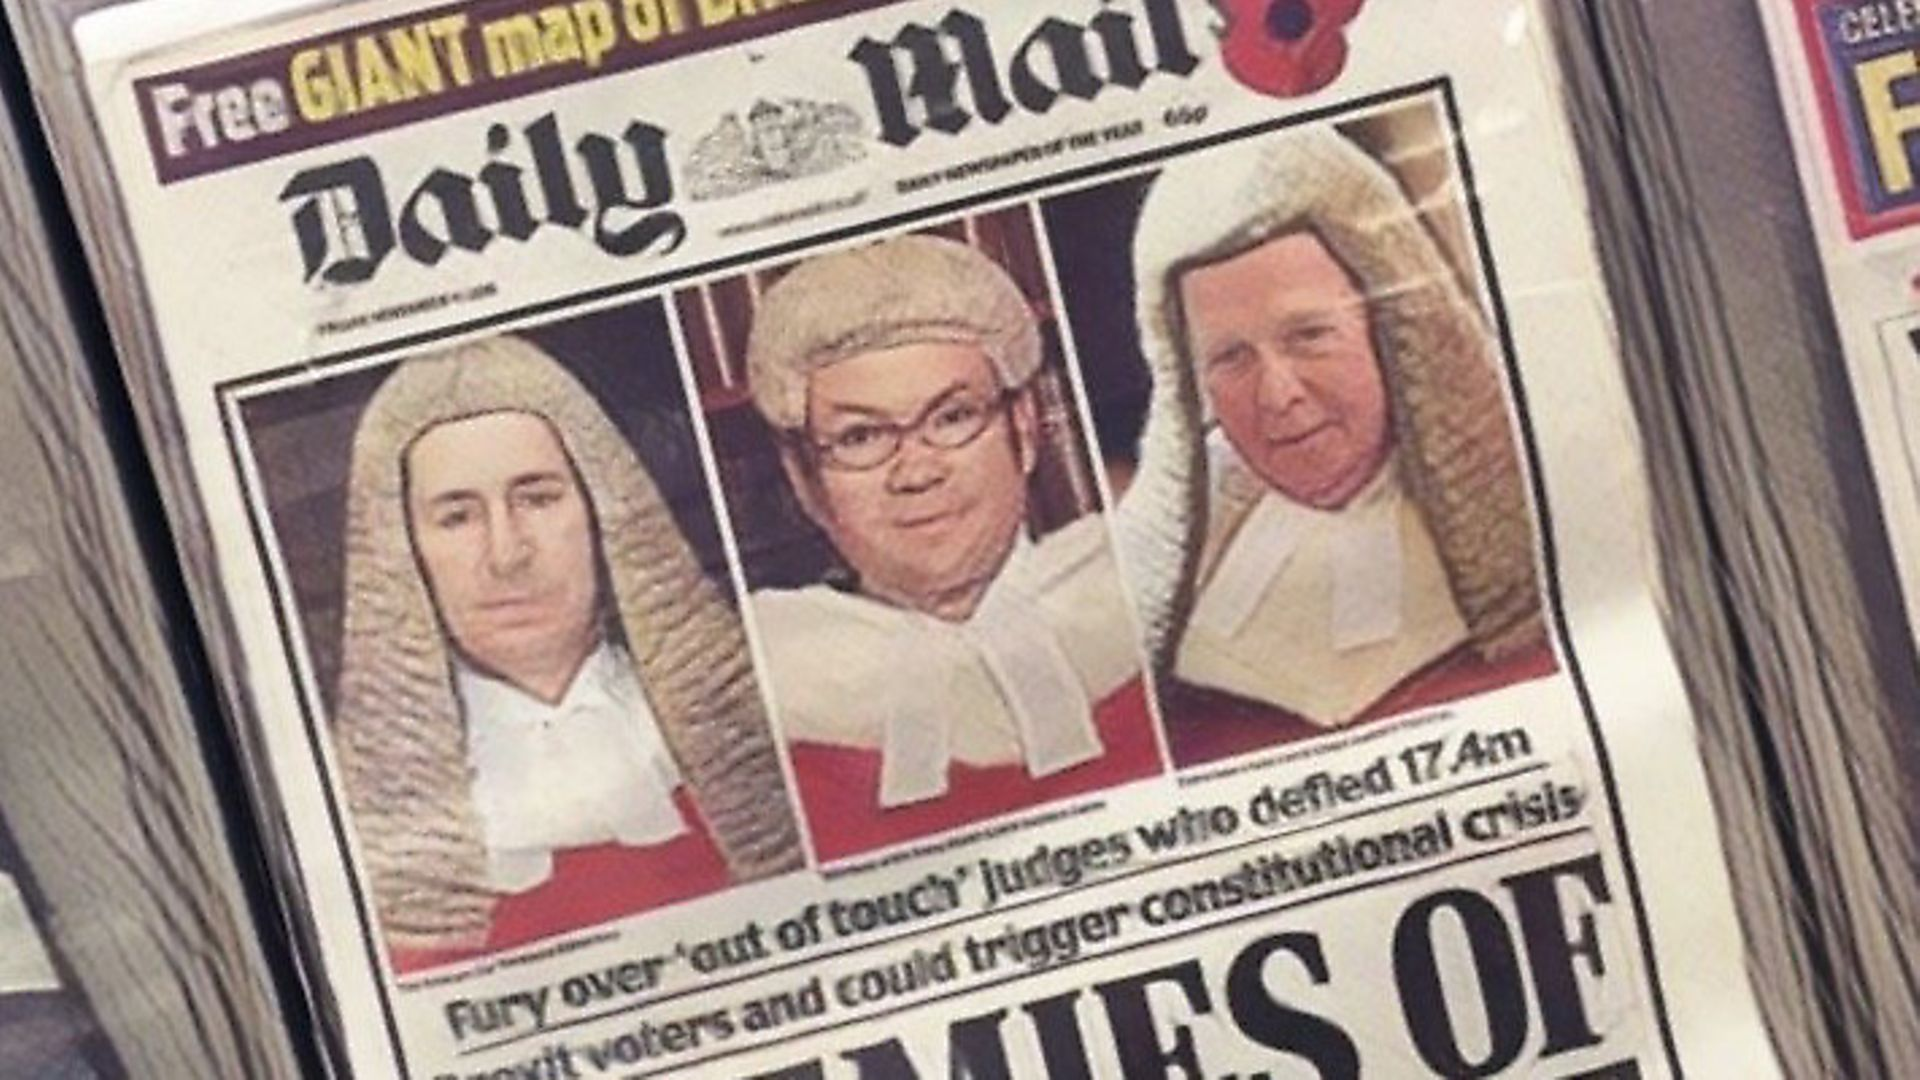 A front page of the Daily Mail. Photograph: TNE. - Credit: Archant